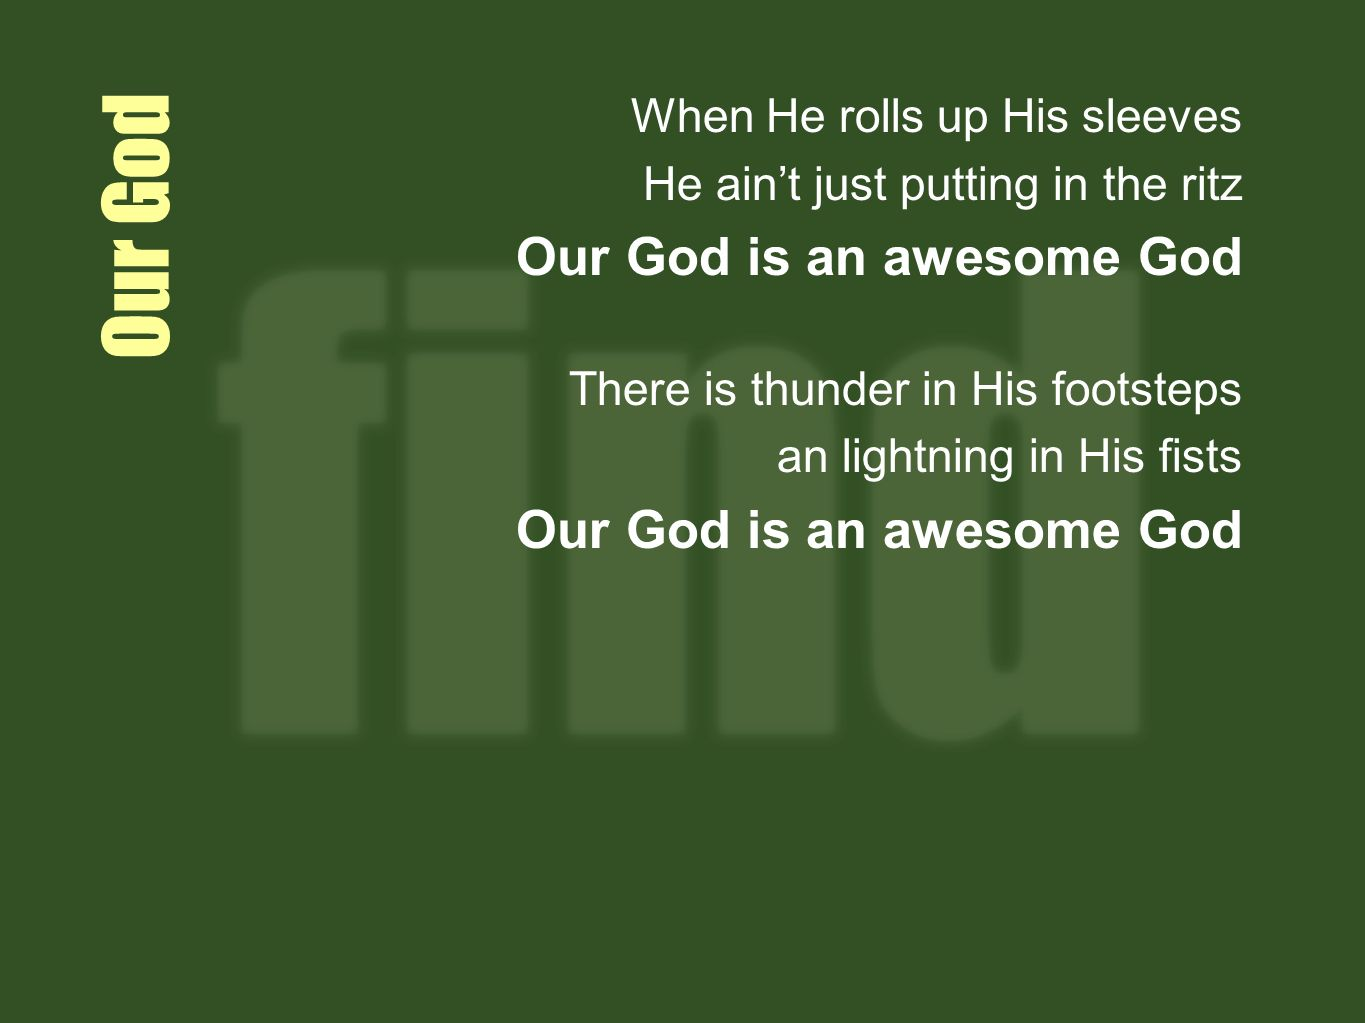 Our God Our God is an awesome God When He rolls up His sleeves